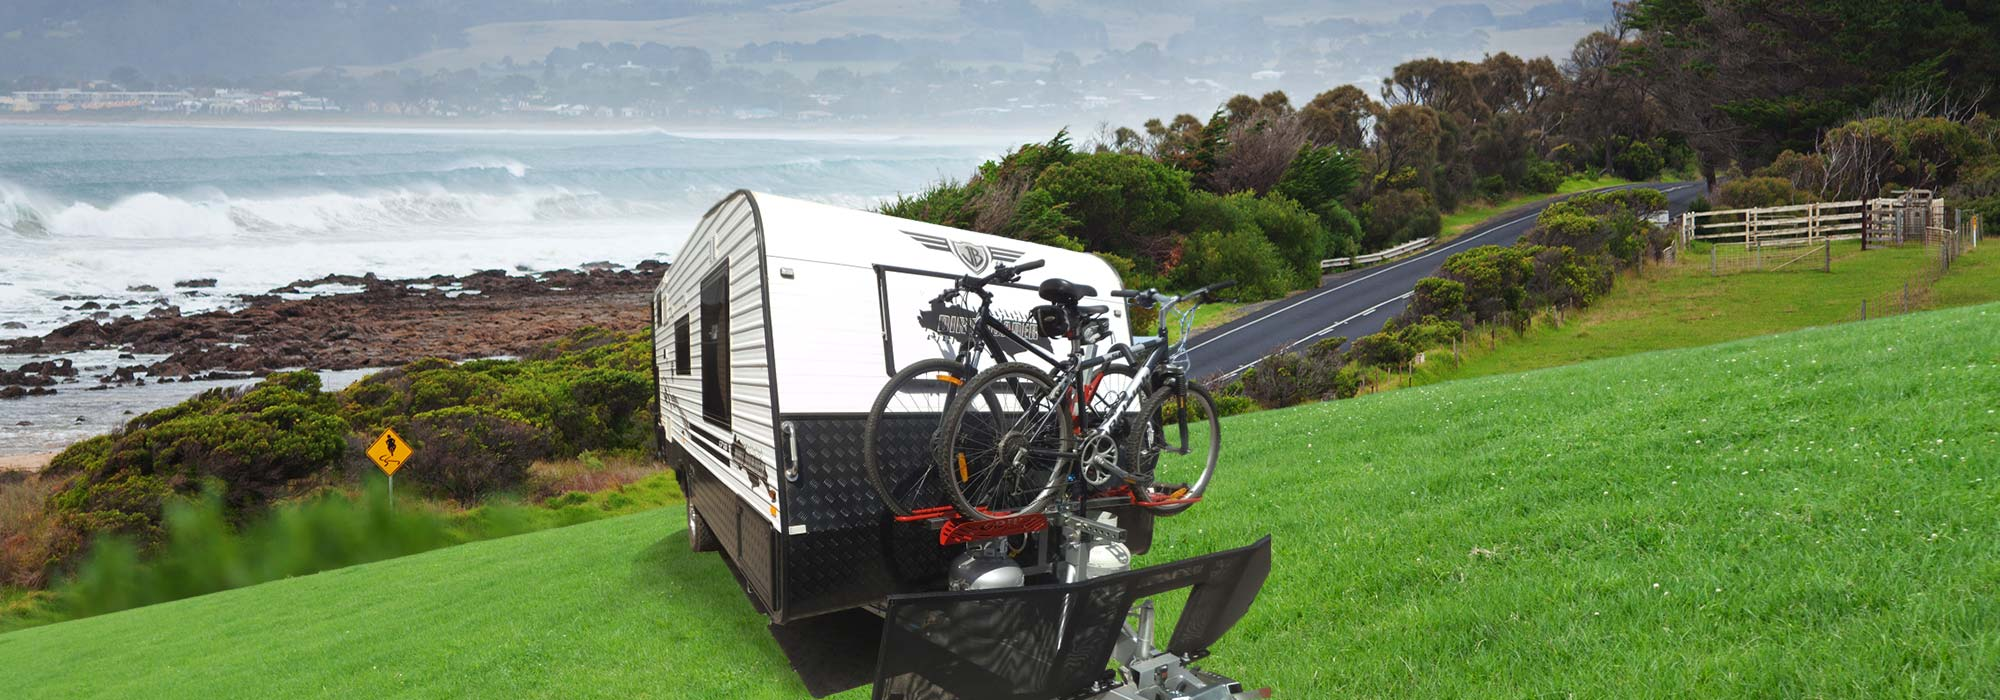 gripsport bike rack on caravan